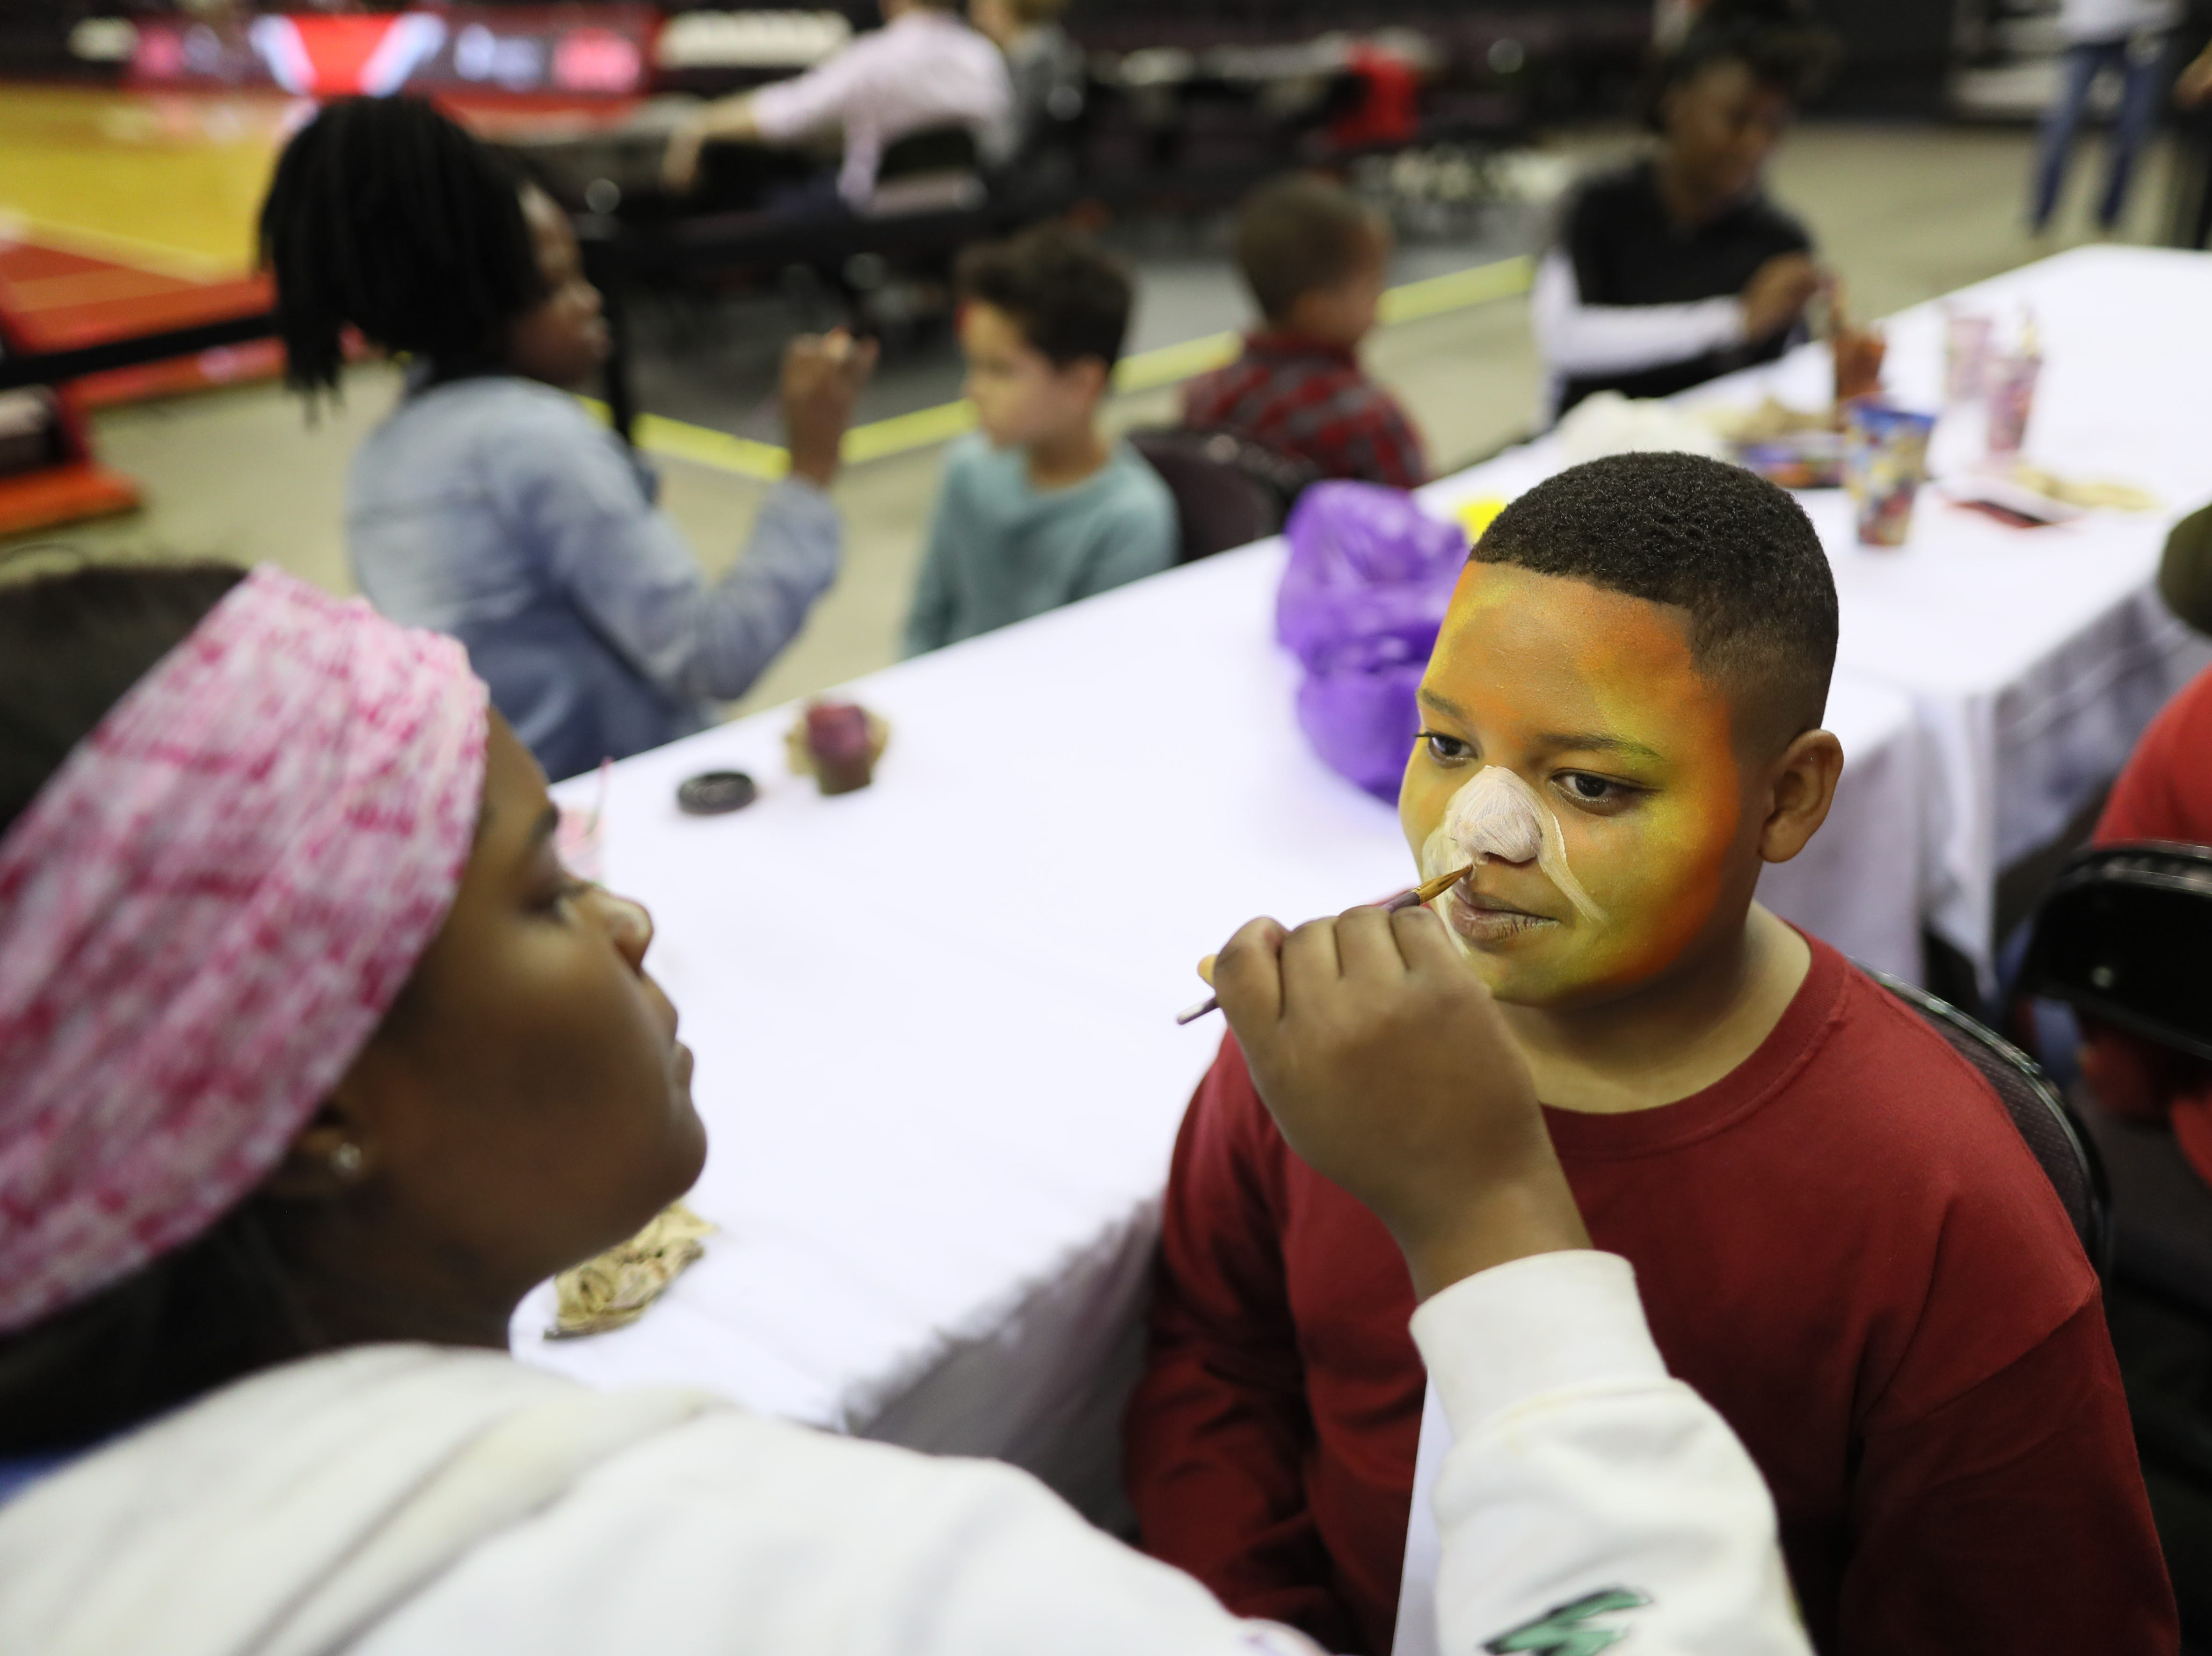 Antwain Forrest, 12, has his face painted by Shanyla Hunter, 17, during the Memphis Hustle Family Fun Day at the Landers Center on Sunday, Oct. 28, 2018.